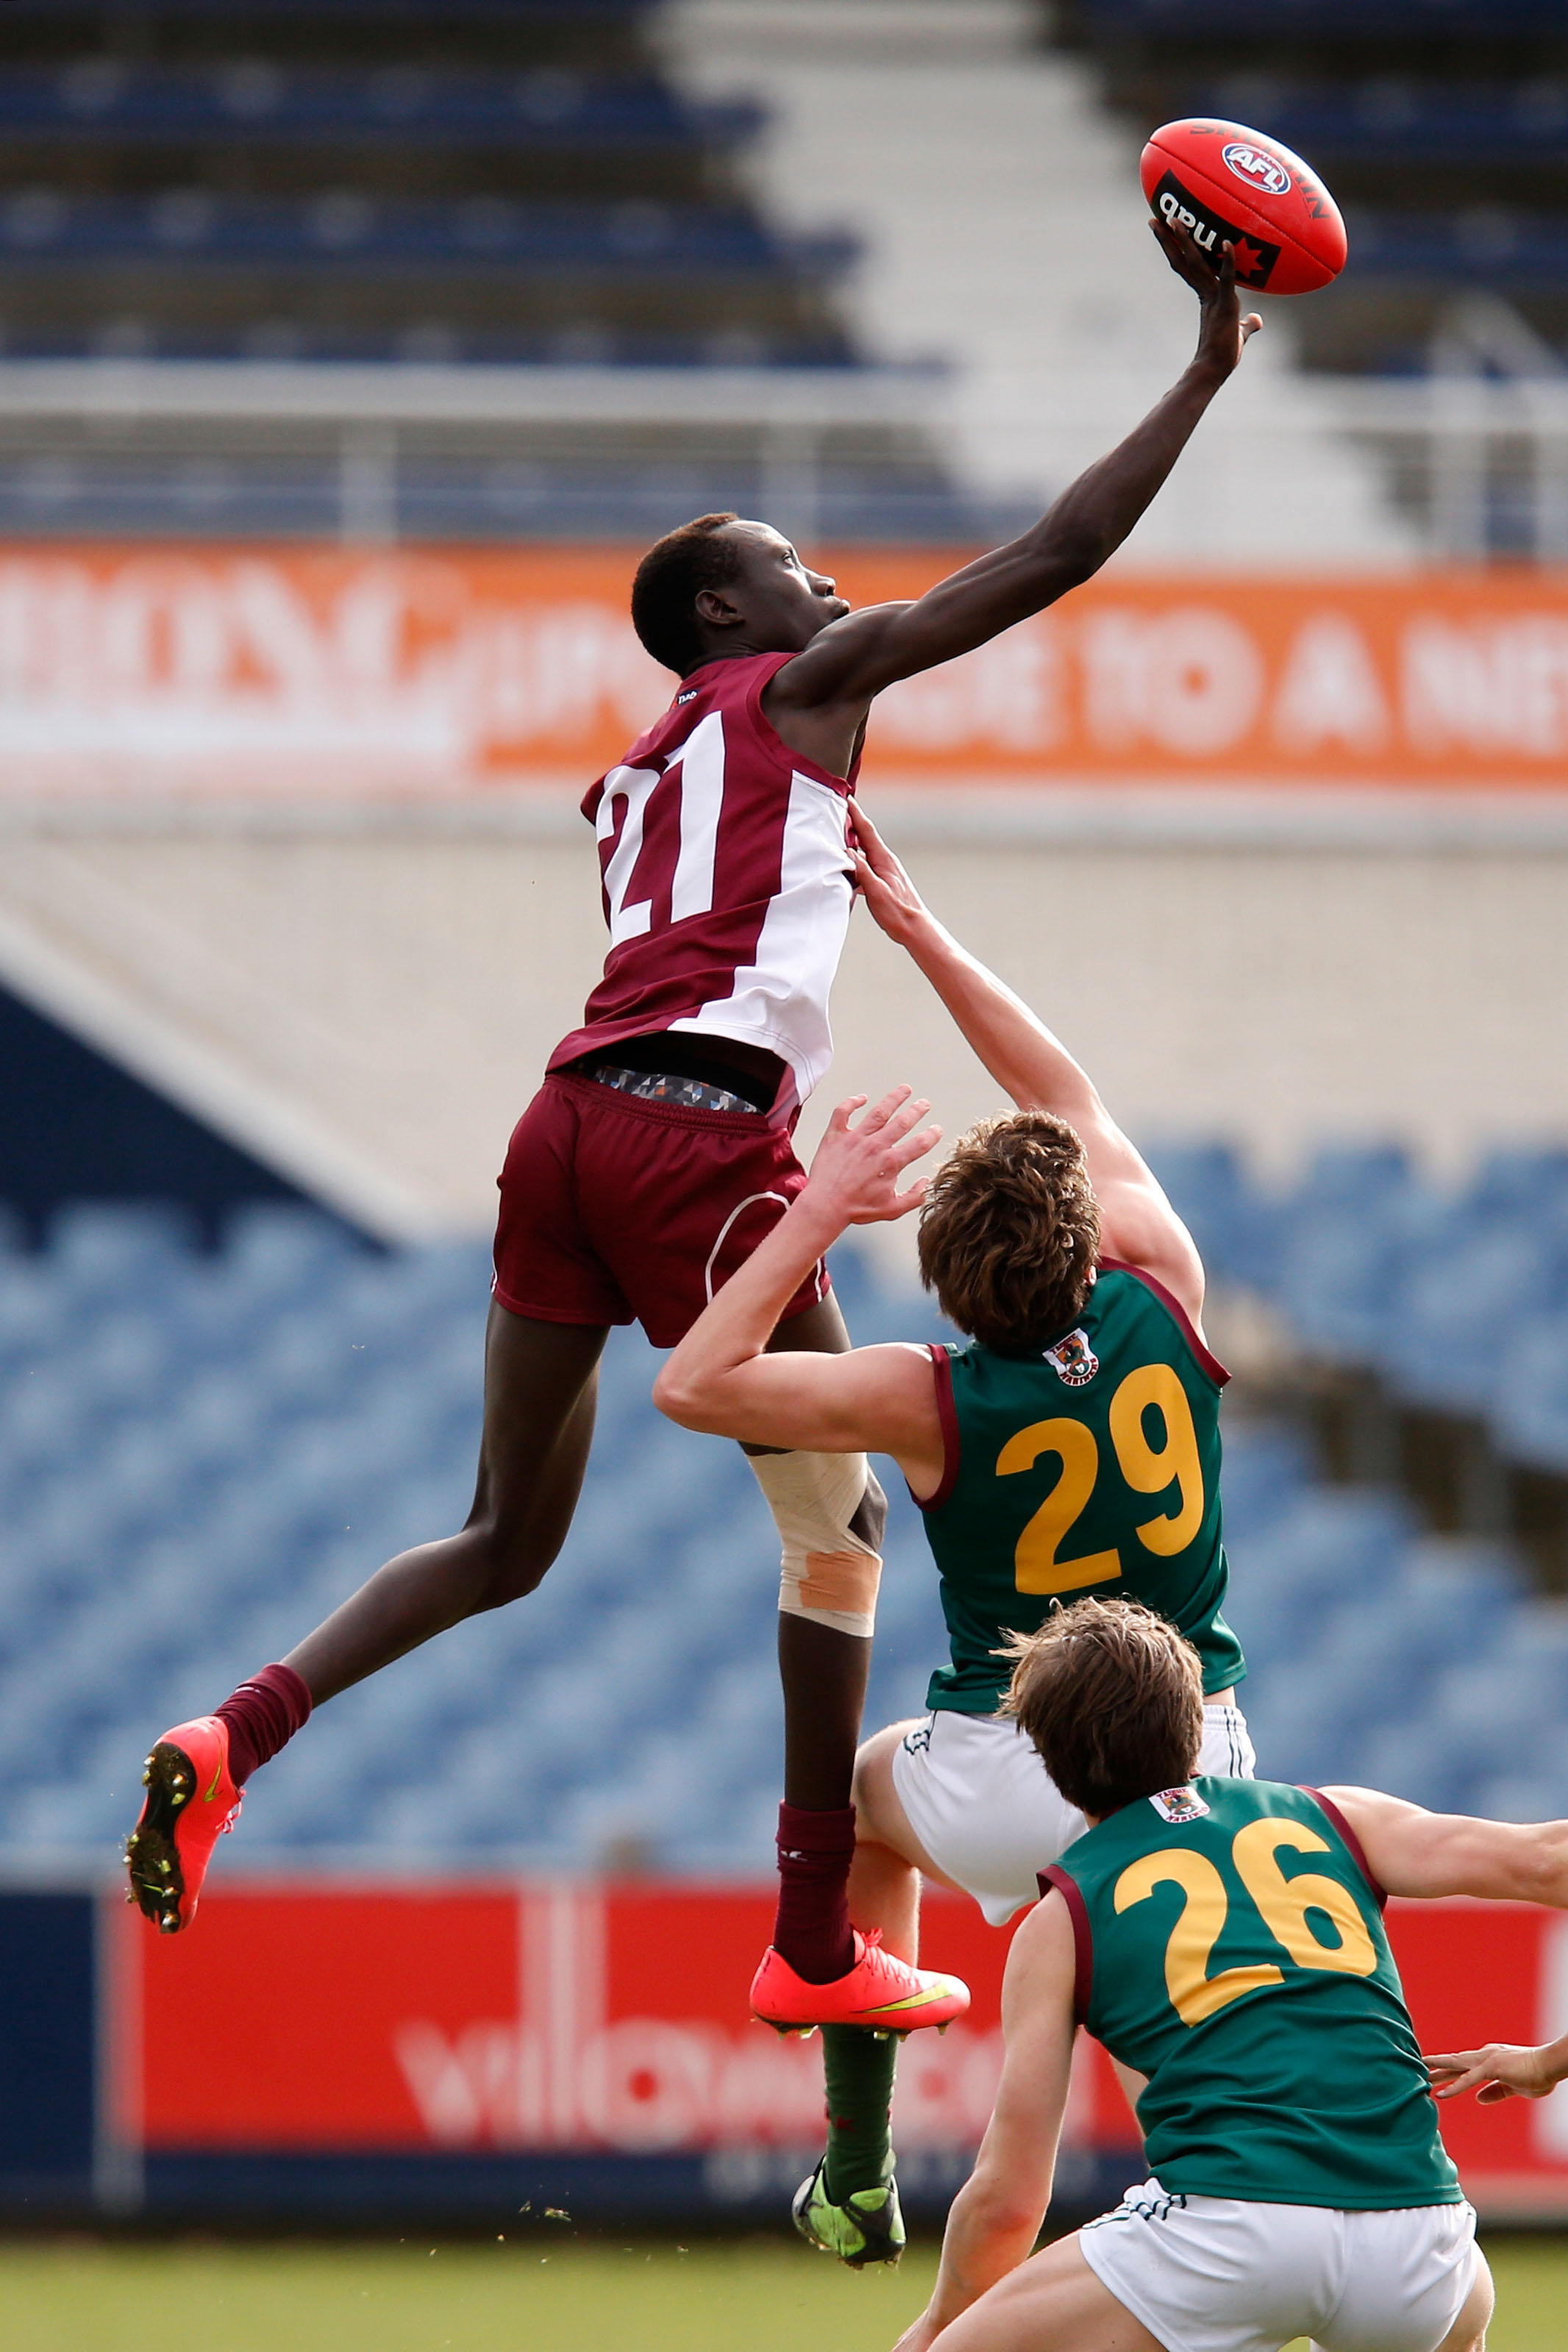 GEELONG, AUSTRALIA - JUNE 27: Mabior Chol of Queensland wins a ruck contest during the 2015 AFL Under 18 match between Queensland and Tasmania at Simonds Stadium, Geelong on June 27, 2015. (Photo by Darrian Traynor/AFL Media)